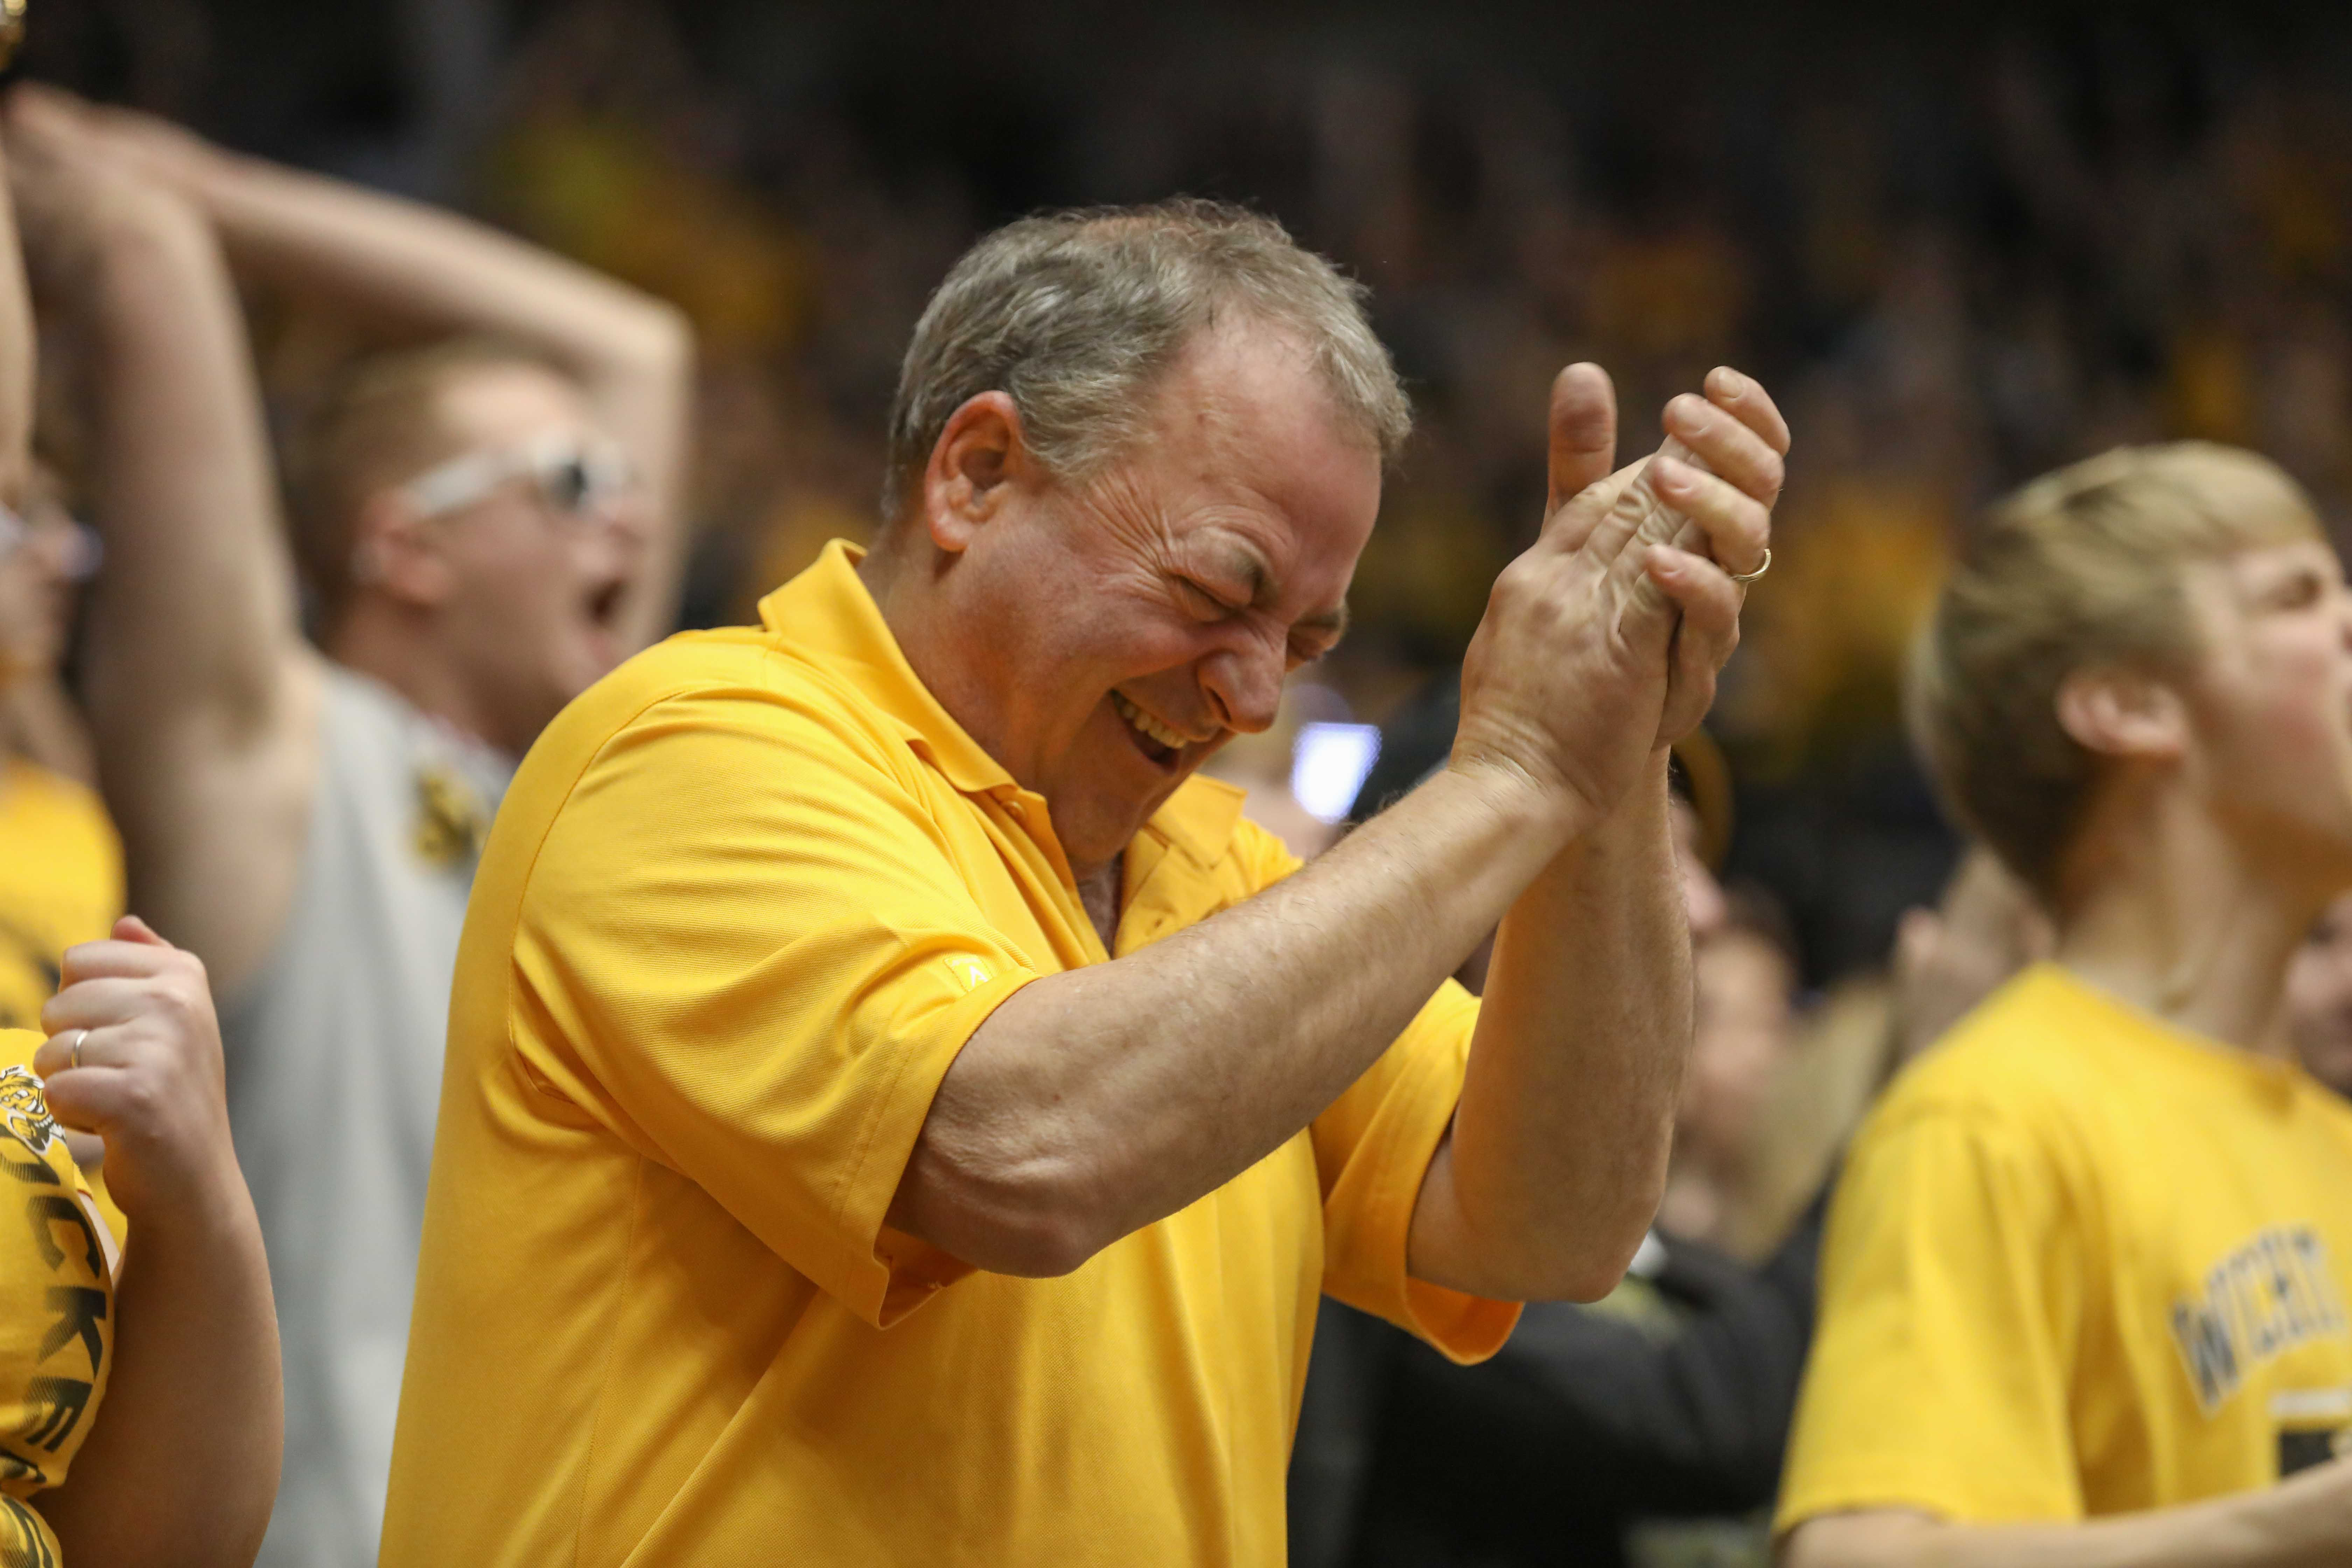 A Wichita State fan cheers during the Shockers win over Northern Iowa. (Feb. 18, 2017)